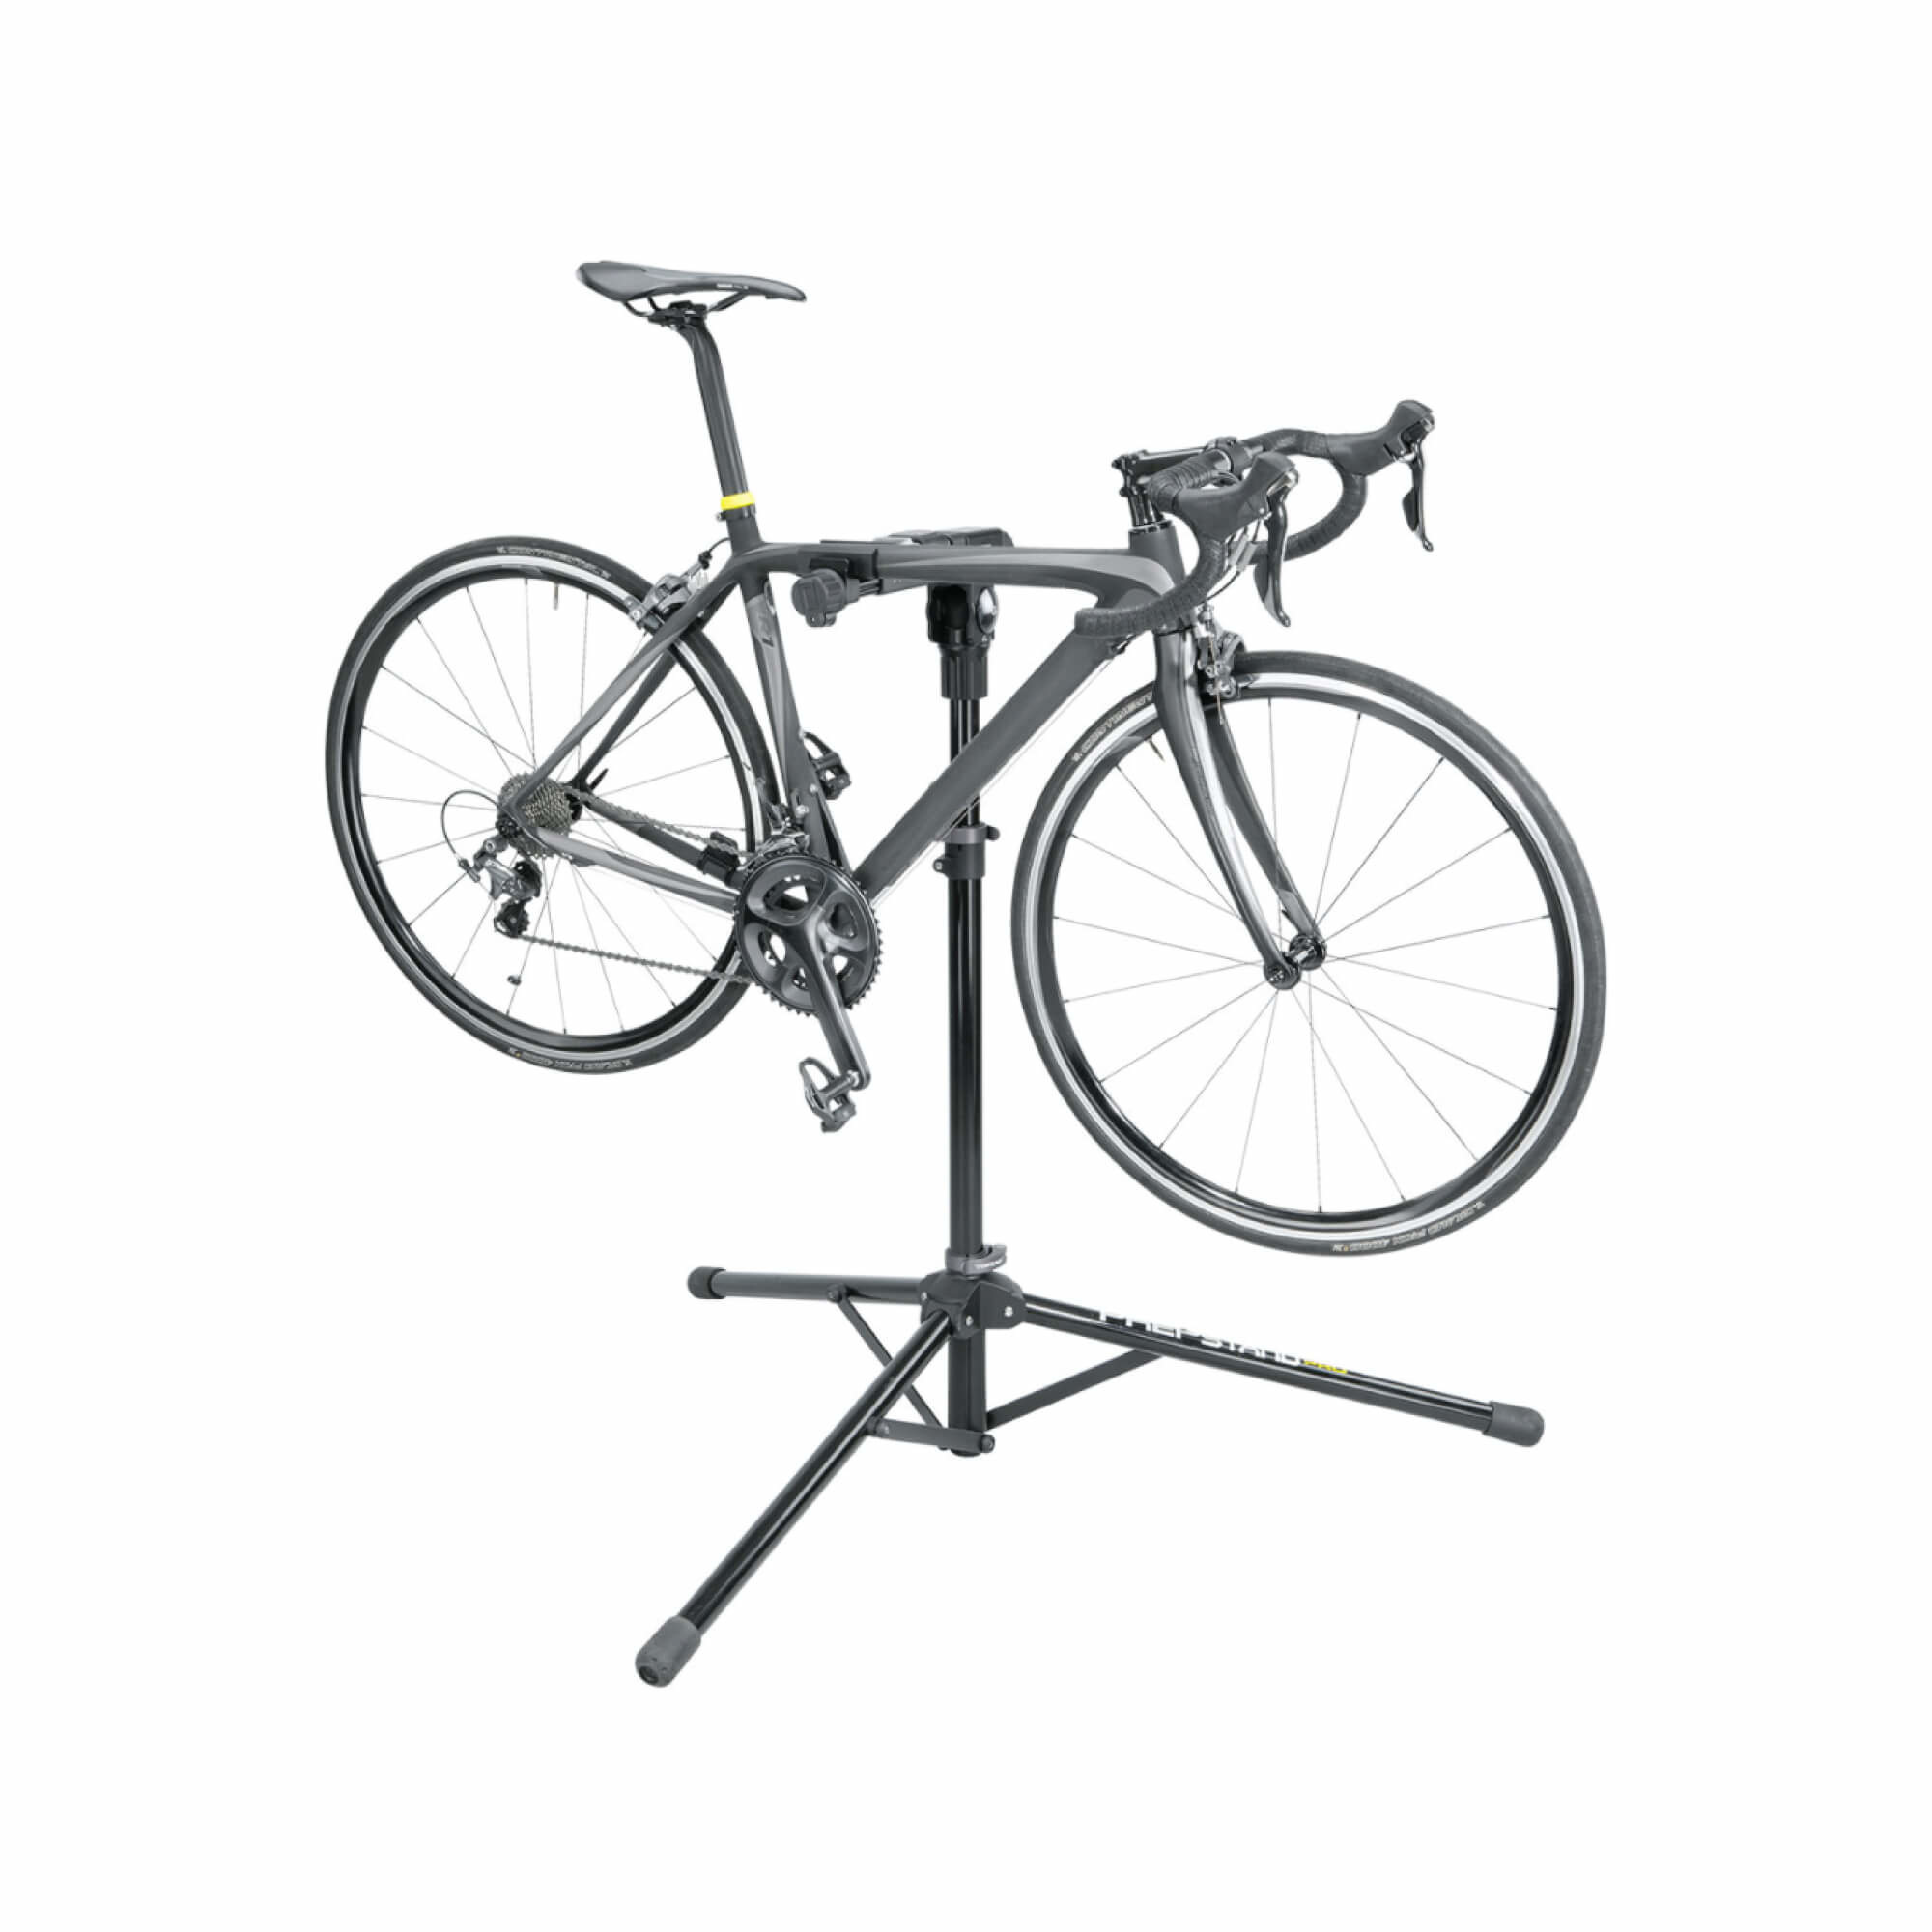 Prepstand Pro With Weight Scale-4